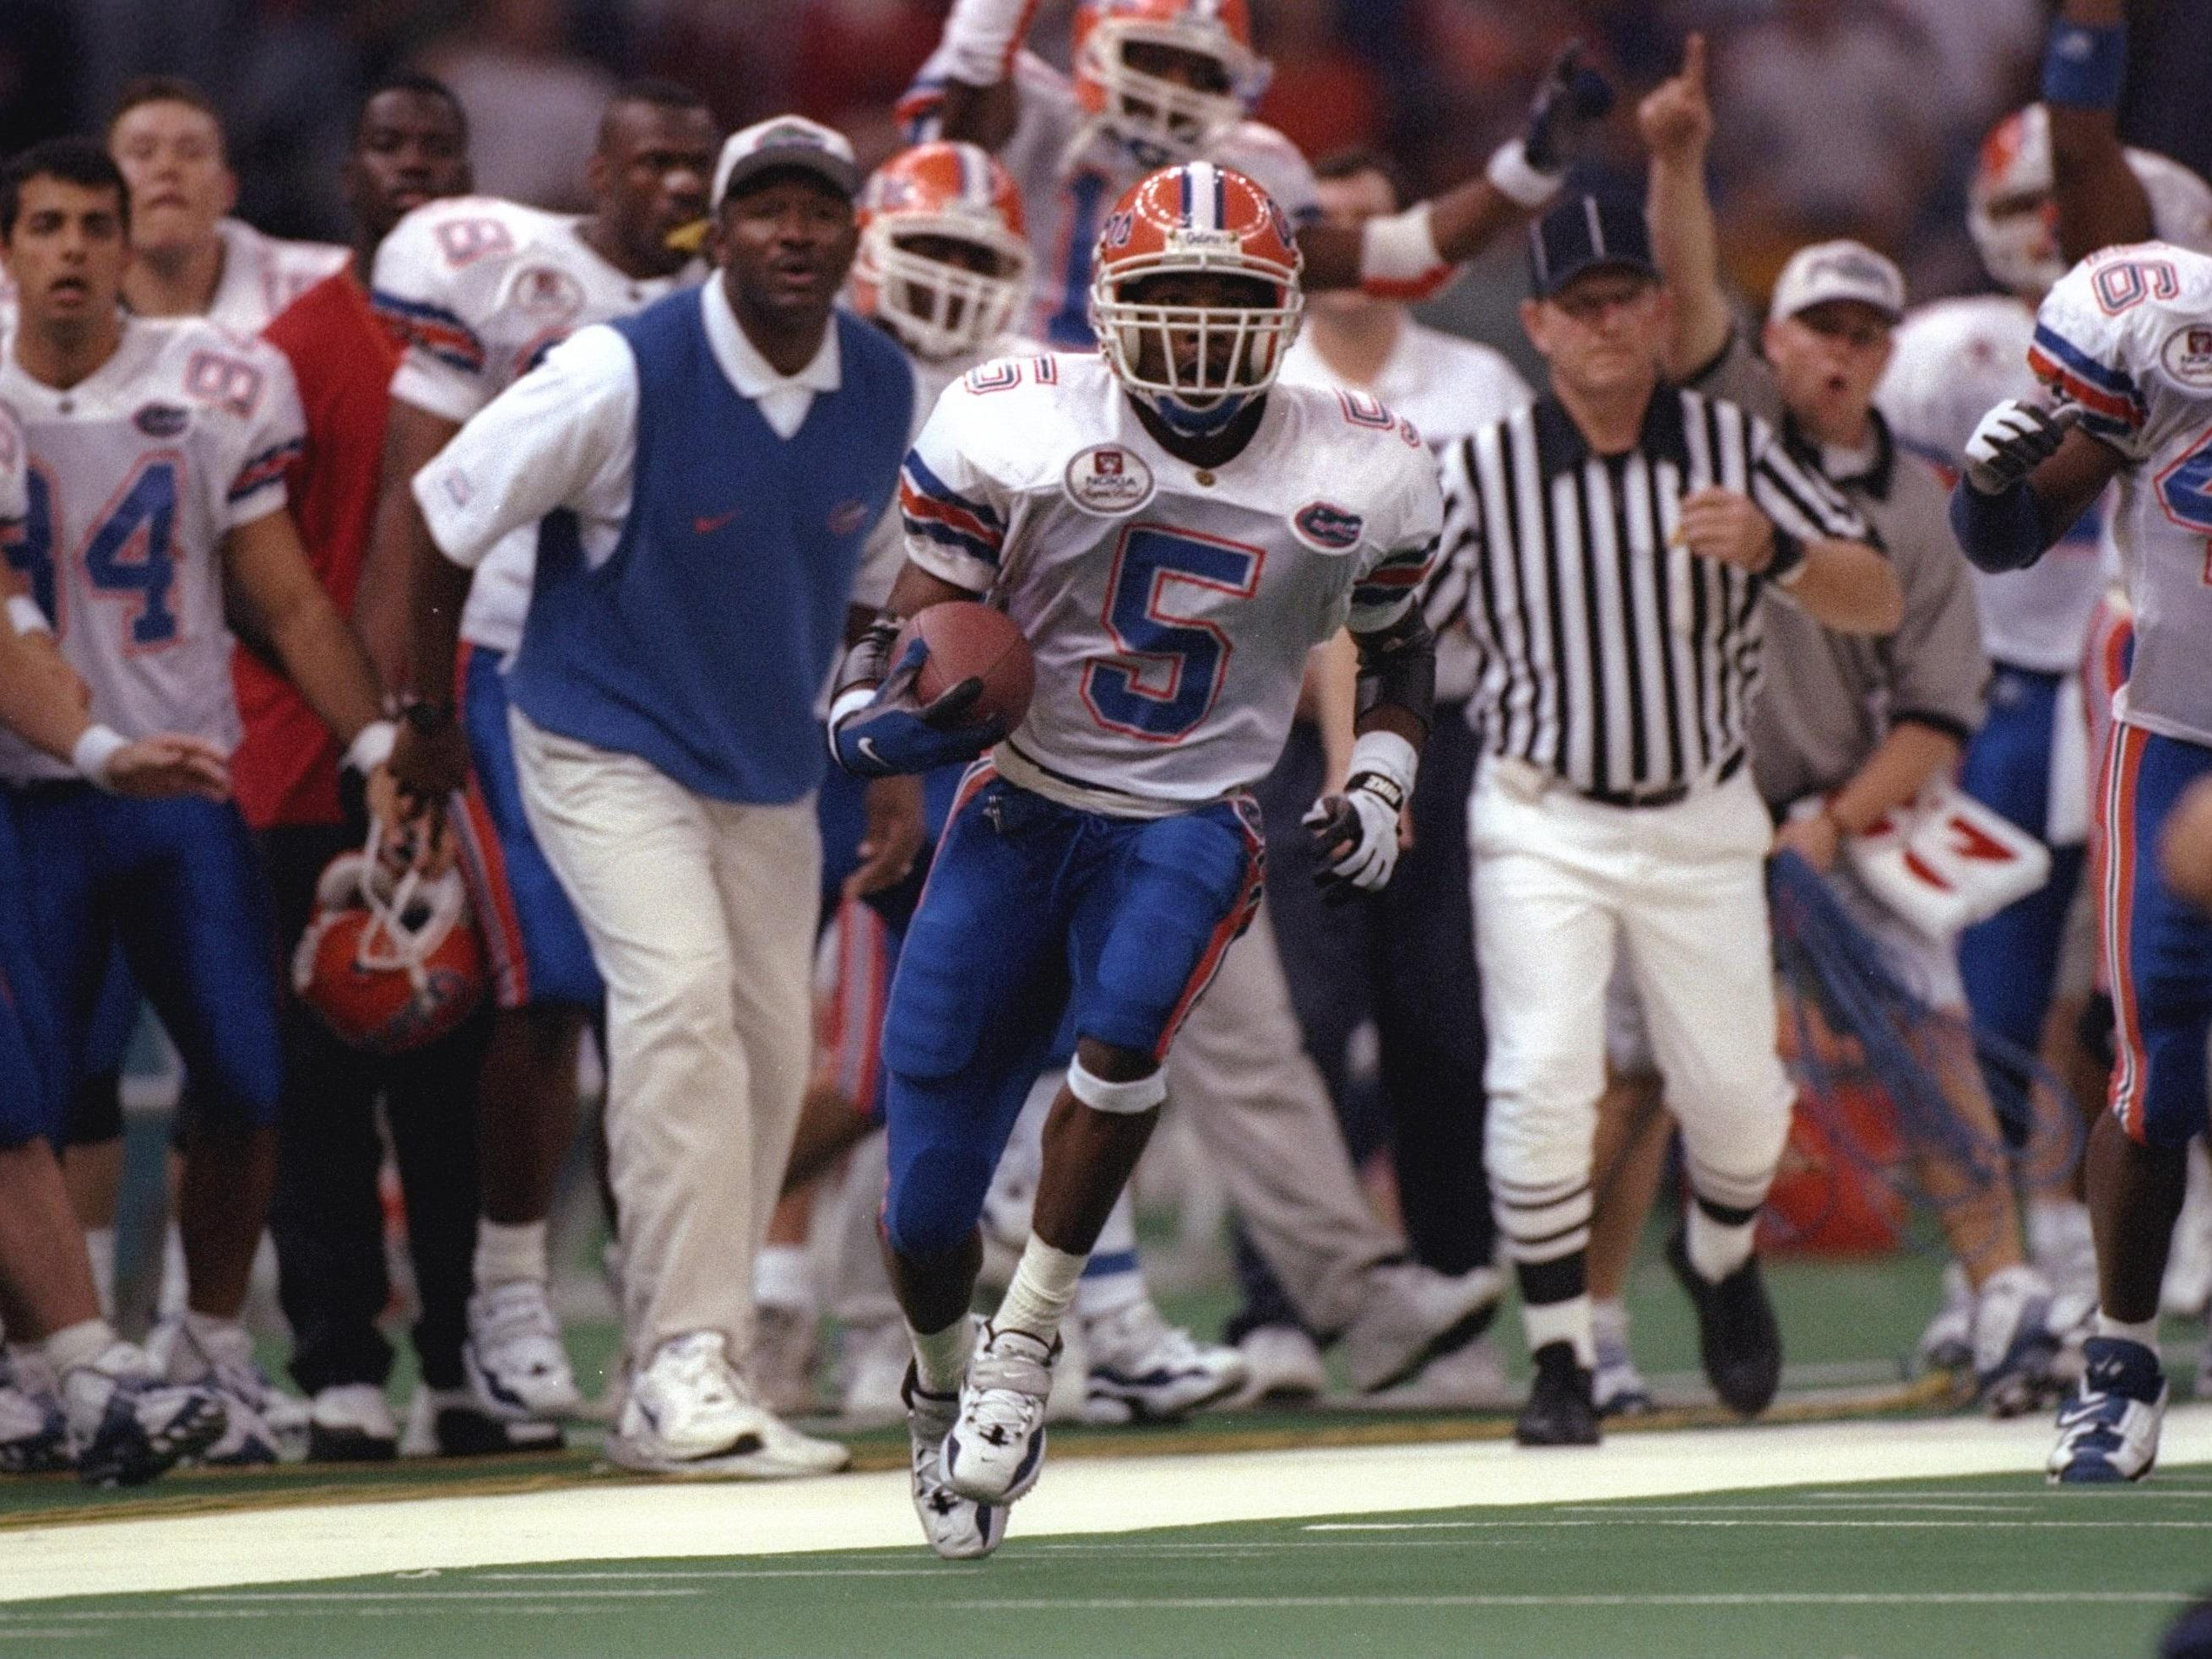 Florida wide receiver Jacquez Green gets up the sideline on a punt return during the Gators' 52-20 win over No. 1 FSU in the 1997 Sugar Bowl, giving Florida a national championship.